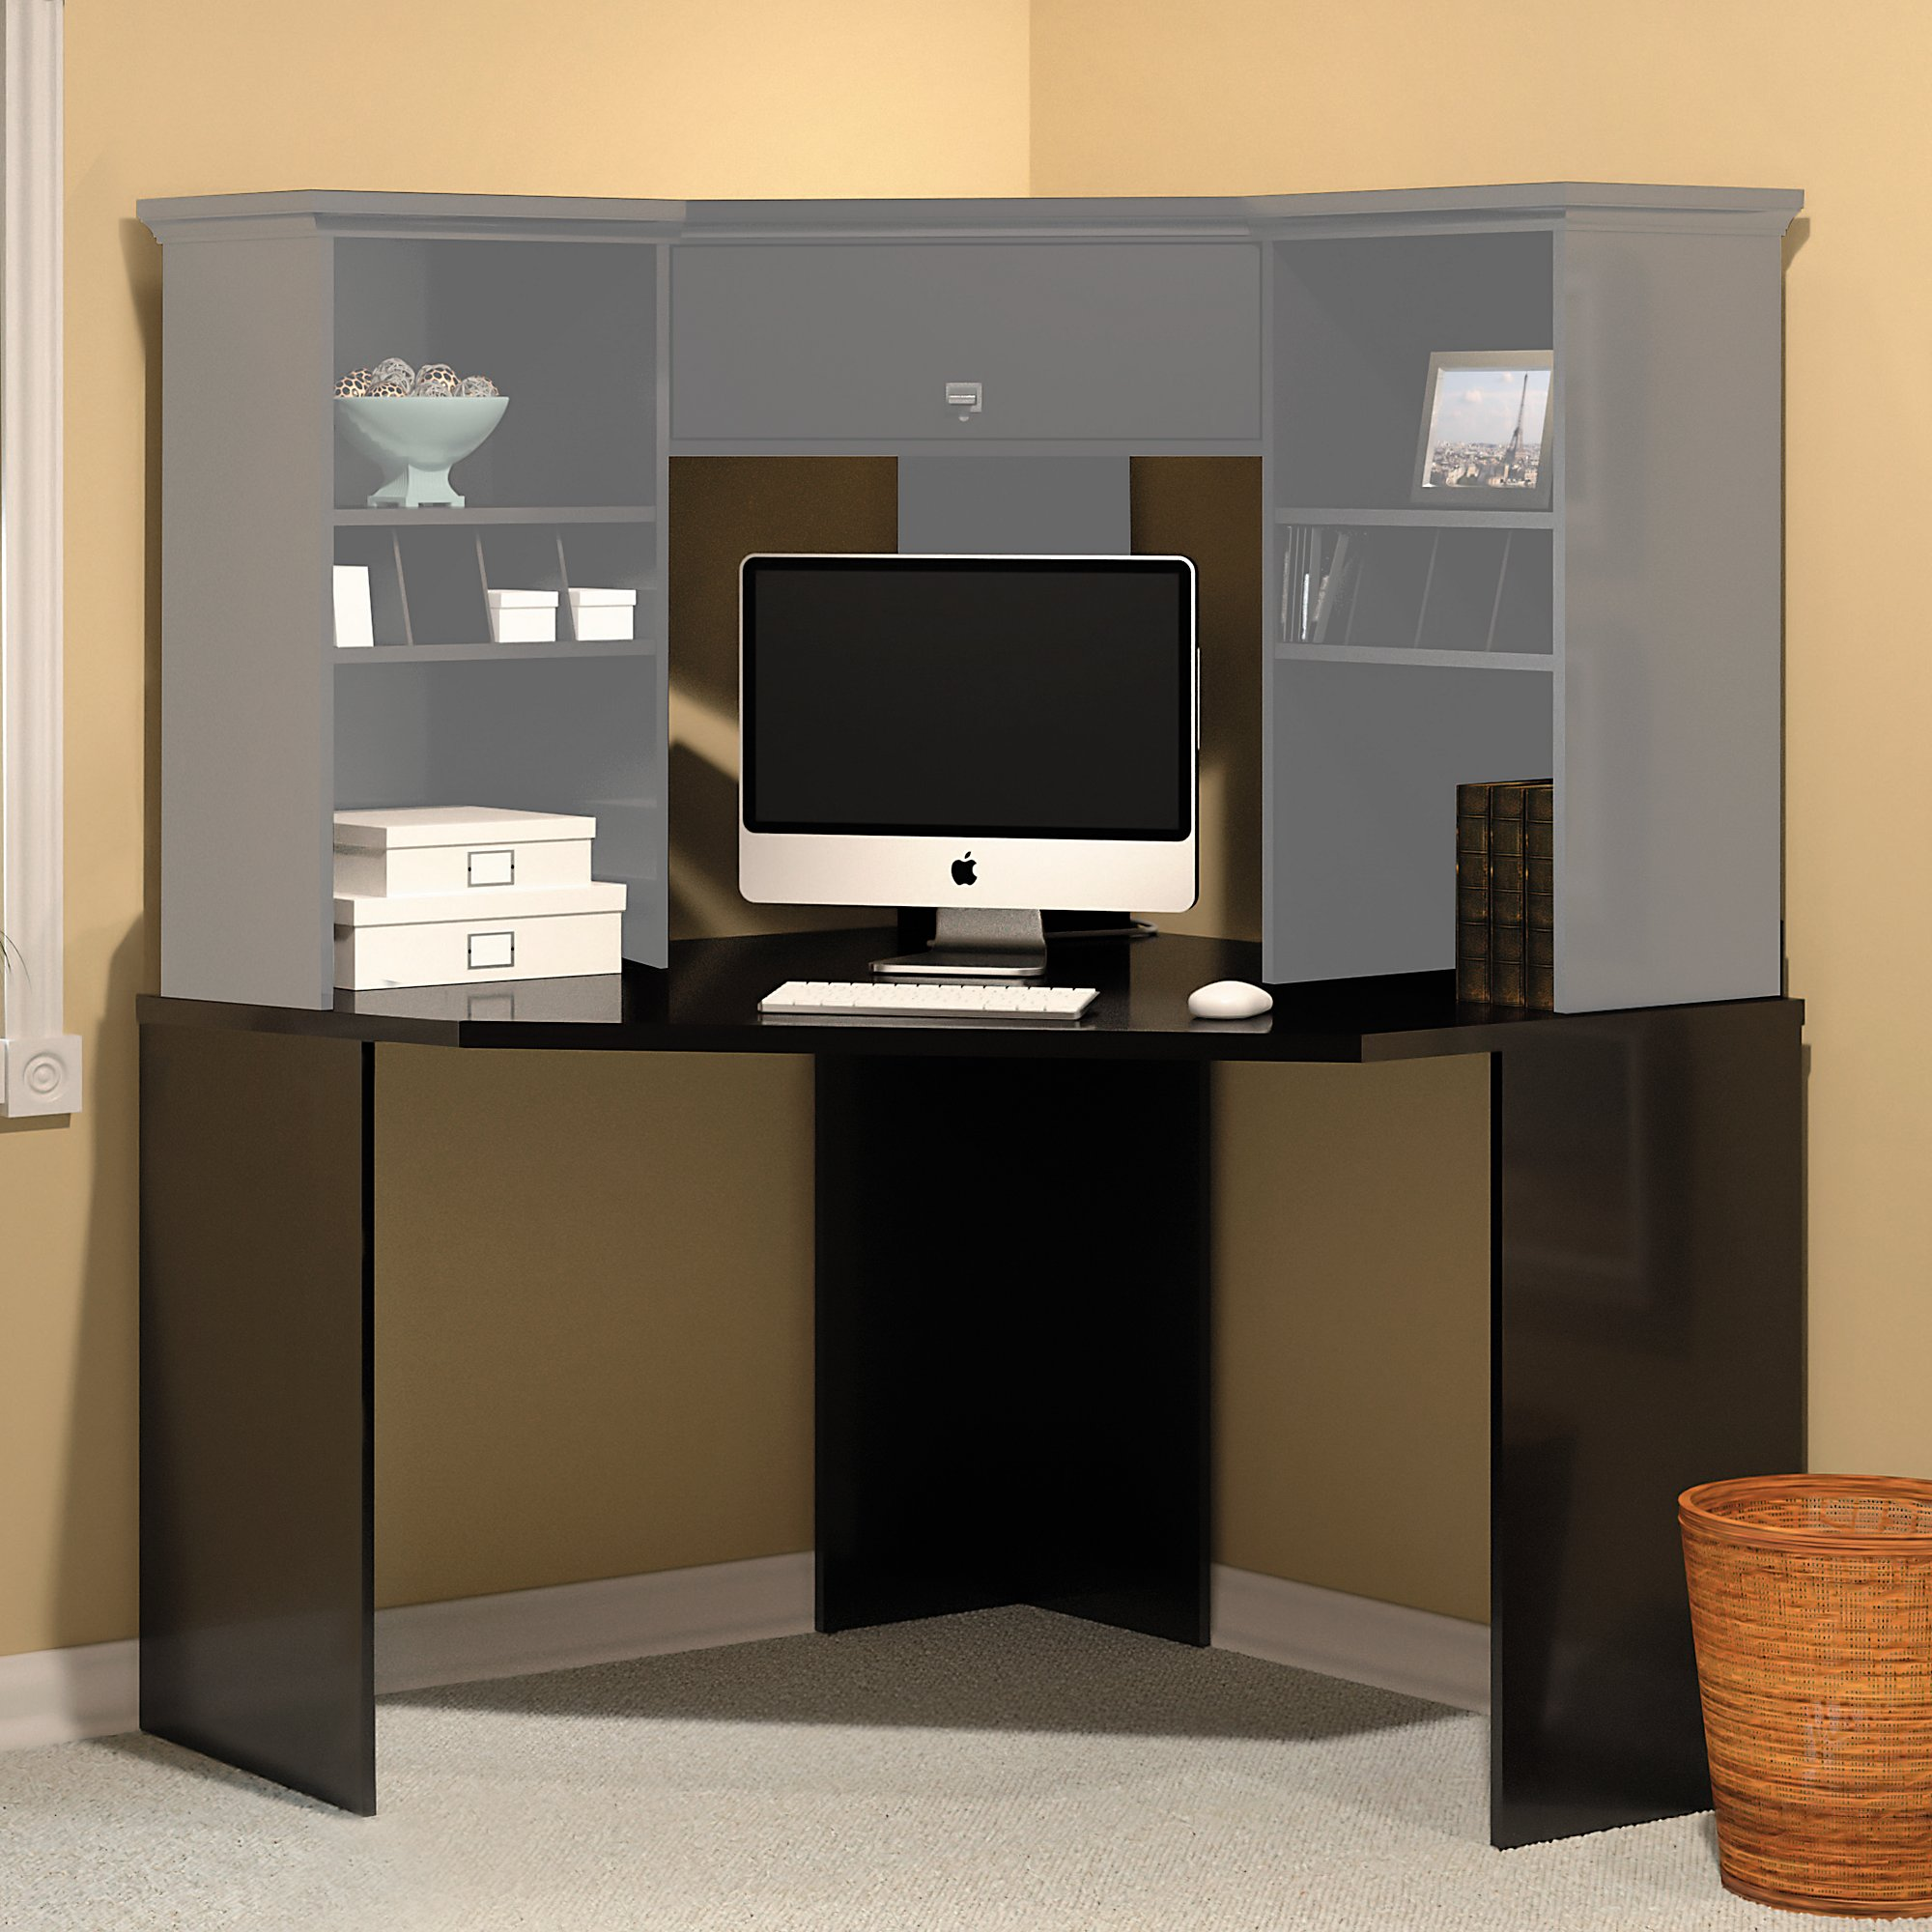 Bush Furniture Stockport Corner Desk in Classic Black